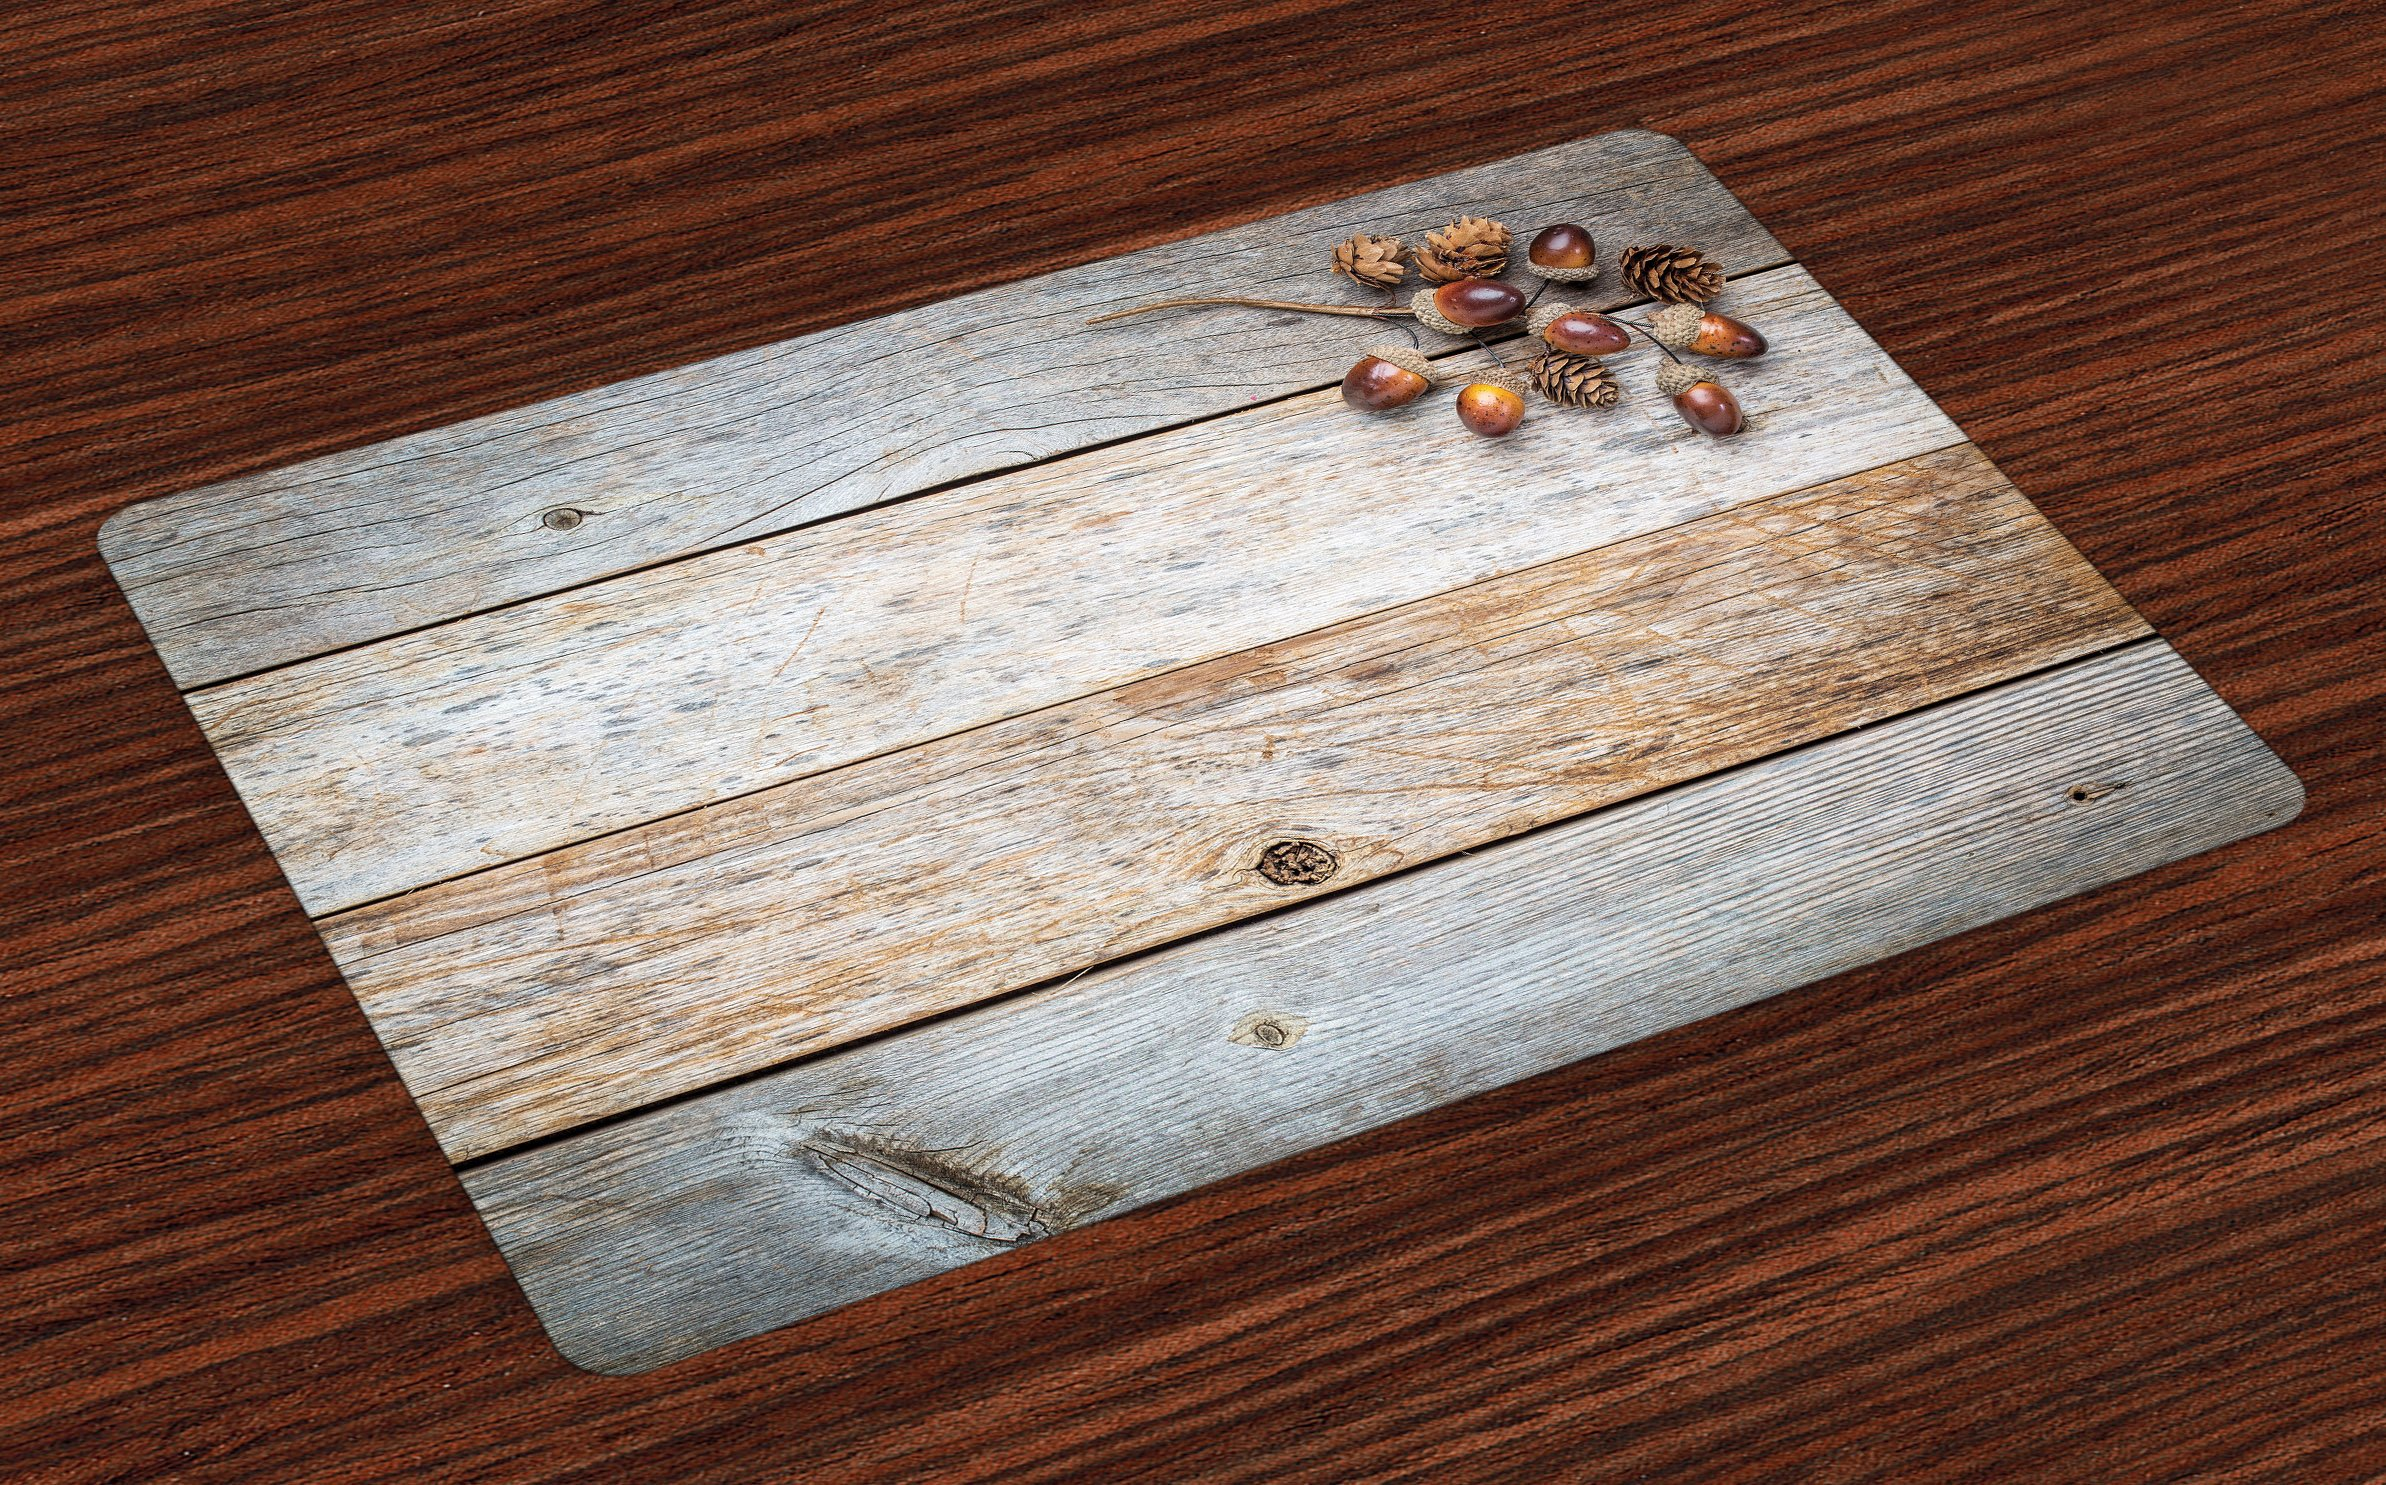 Ambesonne Rustic Place Mats Set of 4, Acorns and Cones on Weathered and Grained Wood Print Background Timber Autumn Theme Image, Washable Fabric Placemats for Dining Room Kitchen Table Decor, Brown